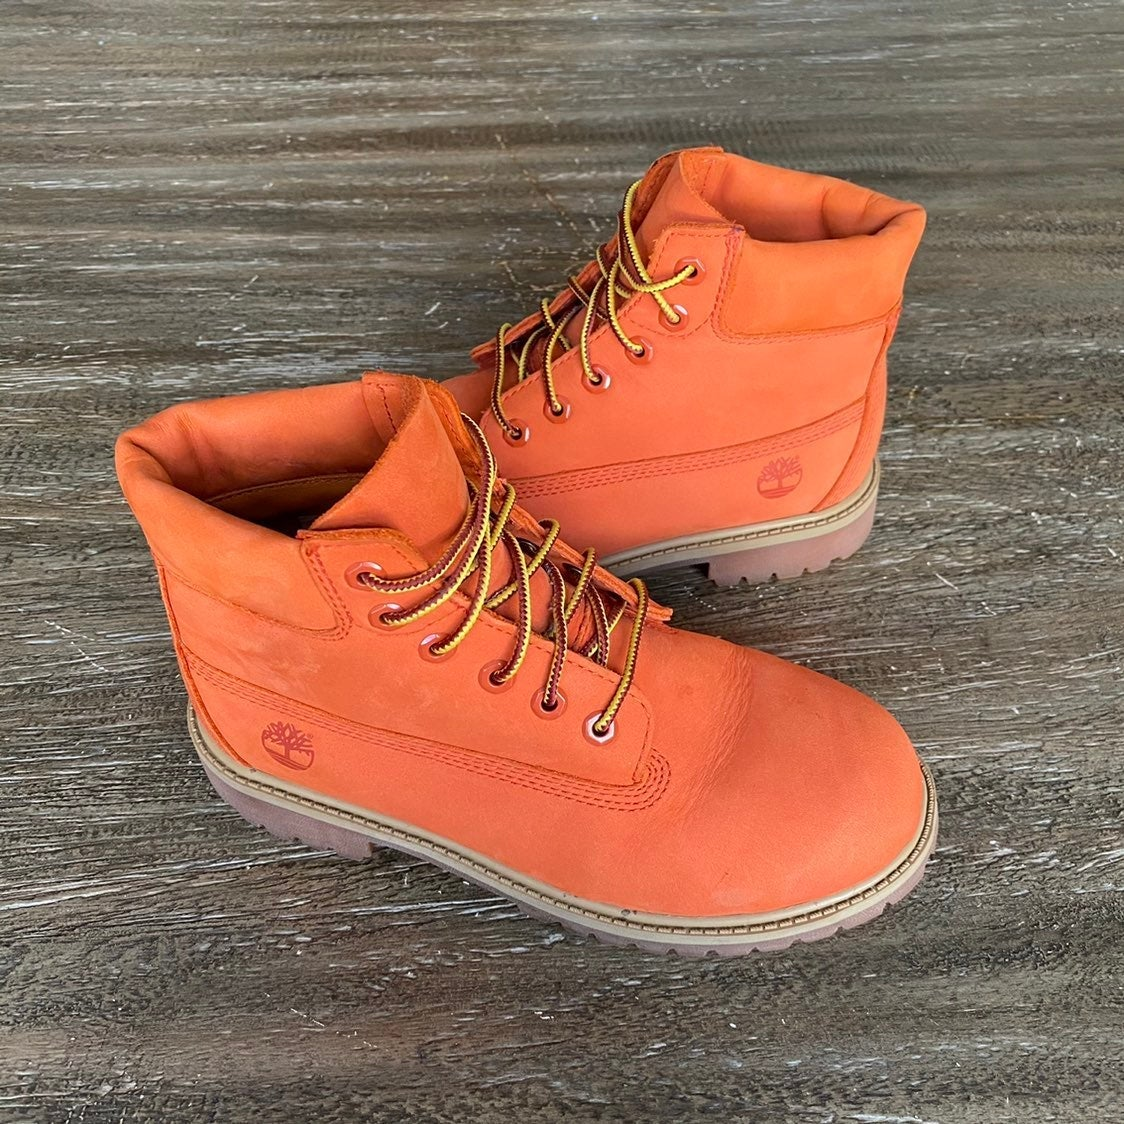 *SALE* Timberland Orange Boots Size 3Y